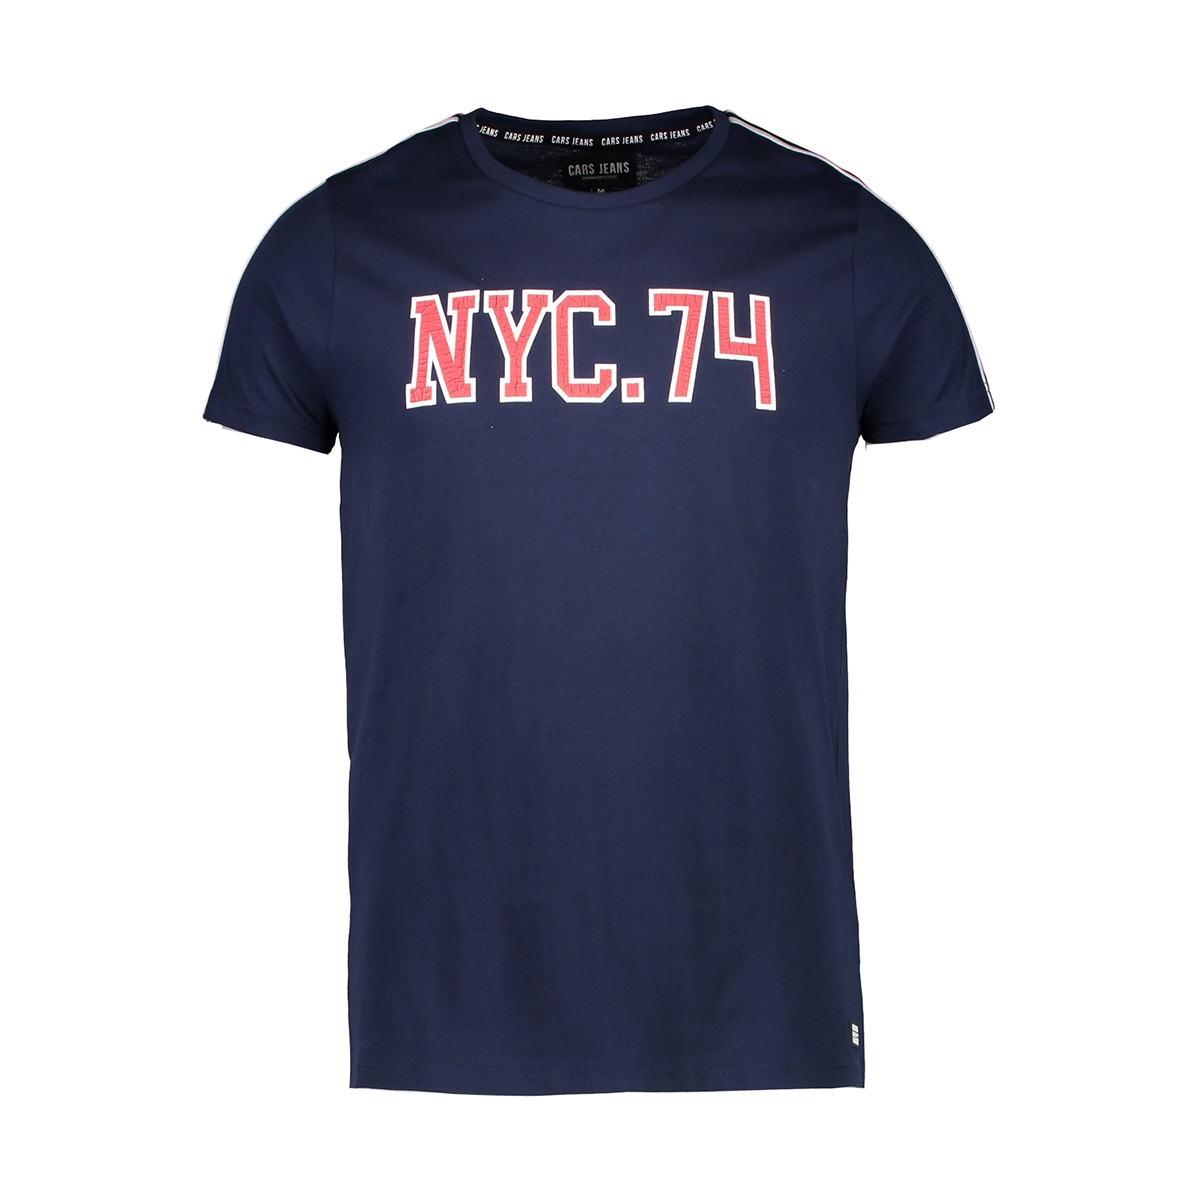 jackson ts 4415412 cars t-shirt navy